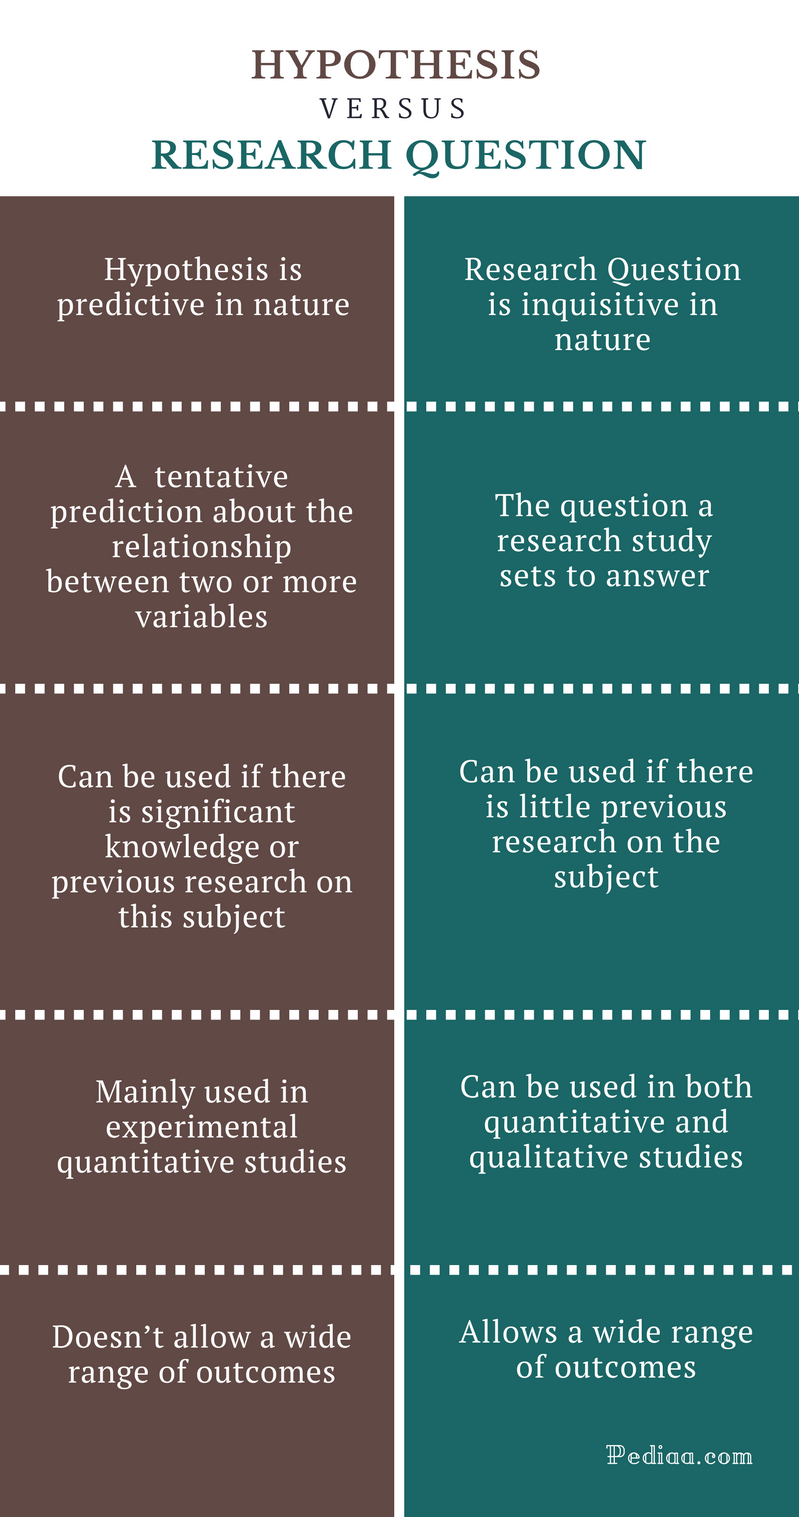 Difference Between Hypothesis and Research Question - Comparison Summary